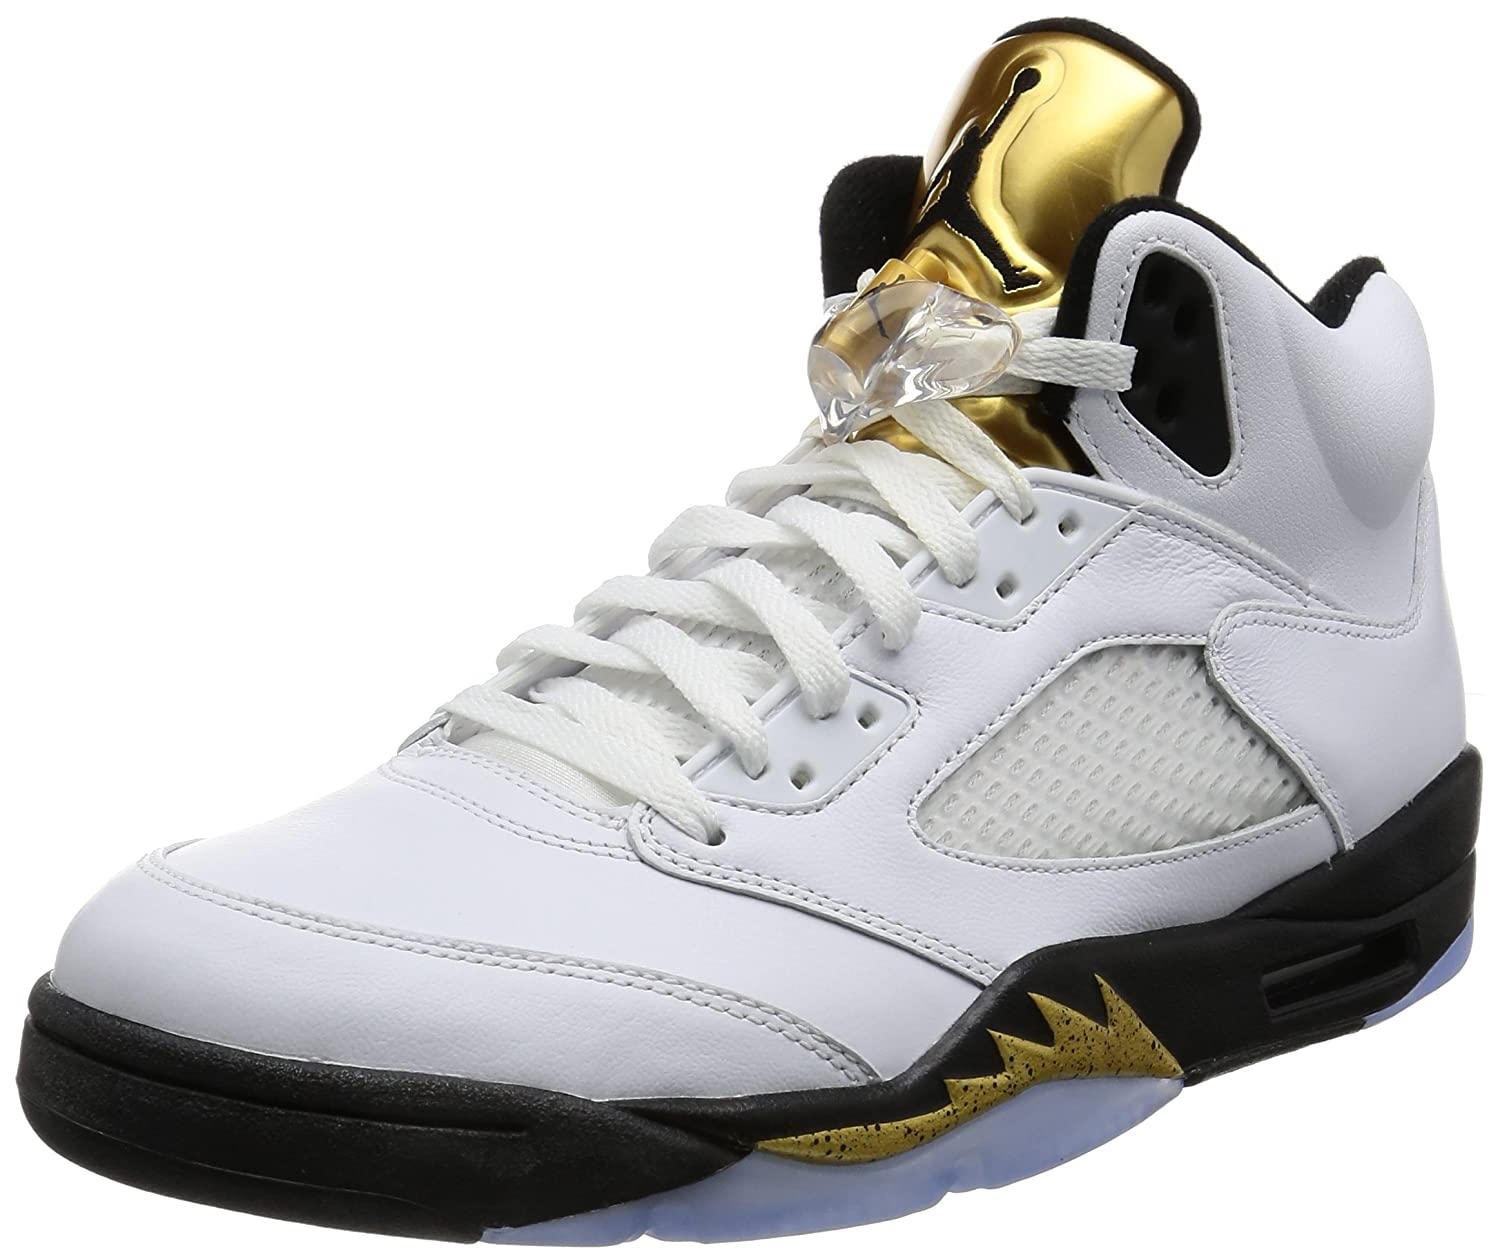 promo code 4d9b5 468d5 Amazon.com   Nike Mens Air Jordan 5 Retro Olympic White Black-Metallic Gold  Leather Size 11   Basketball